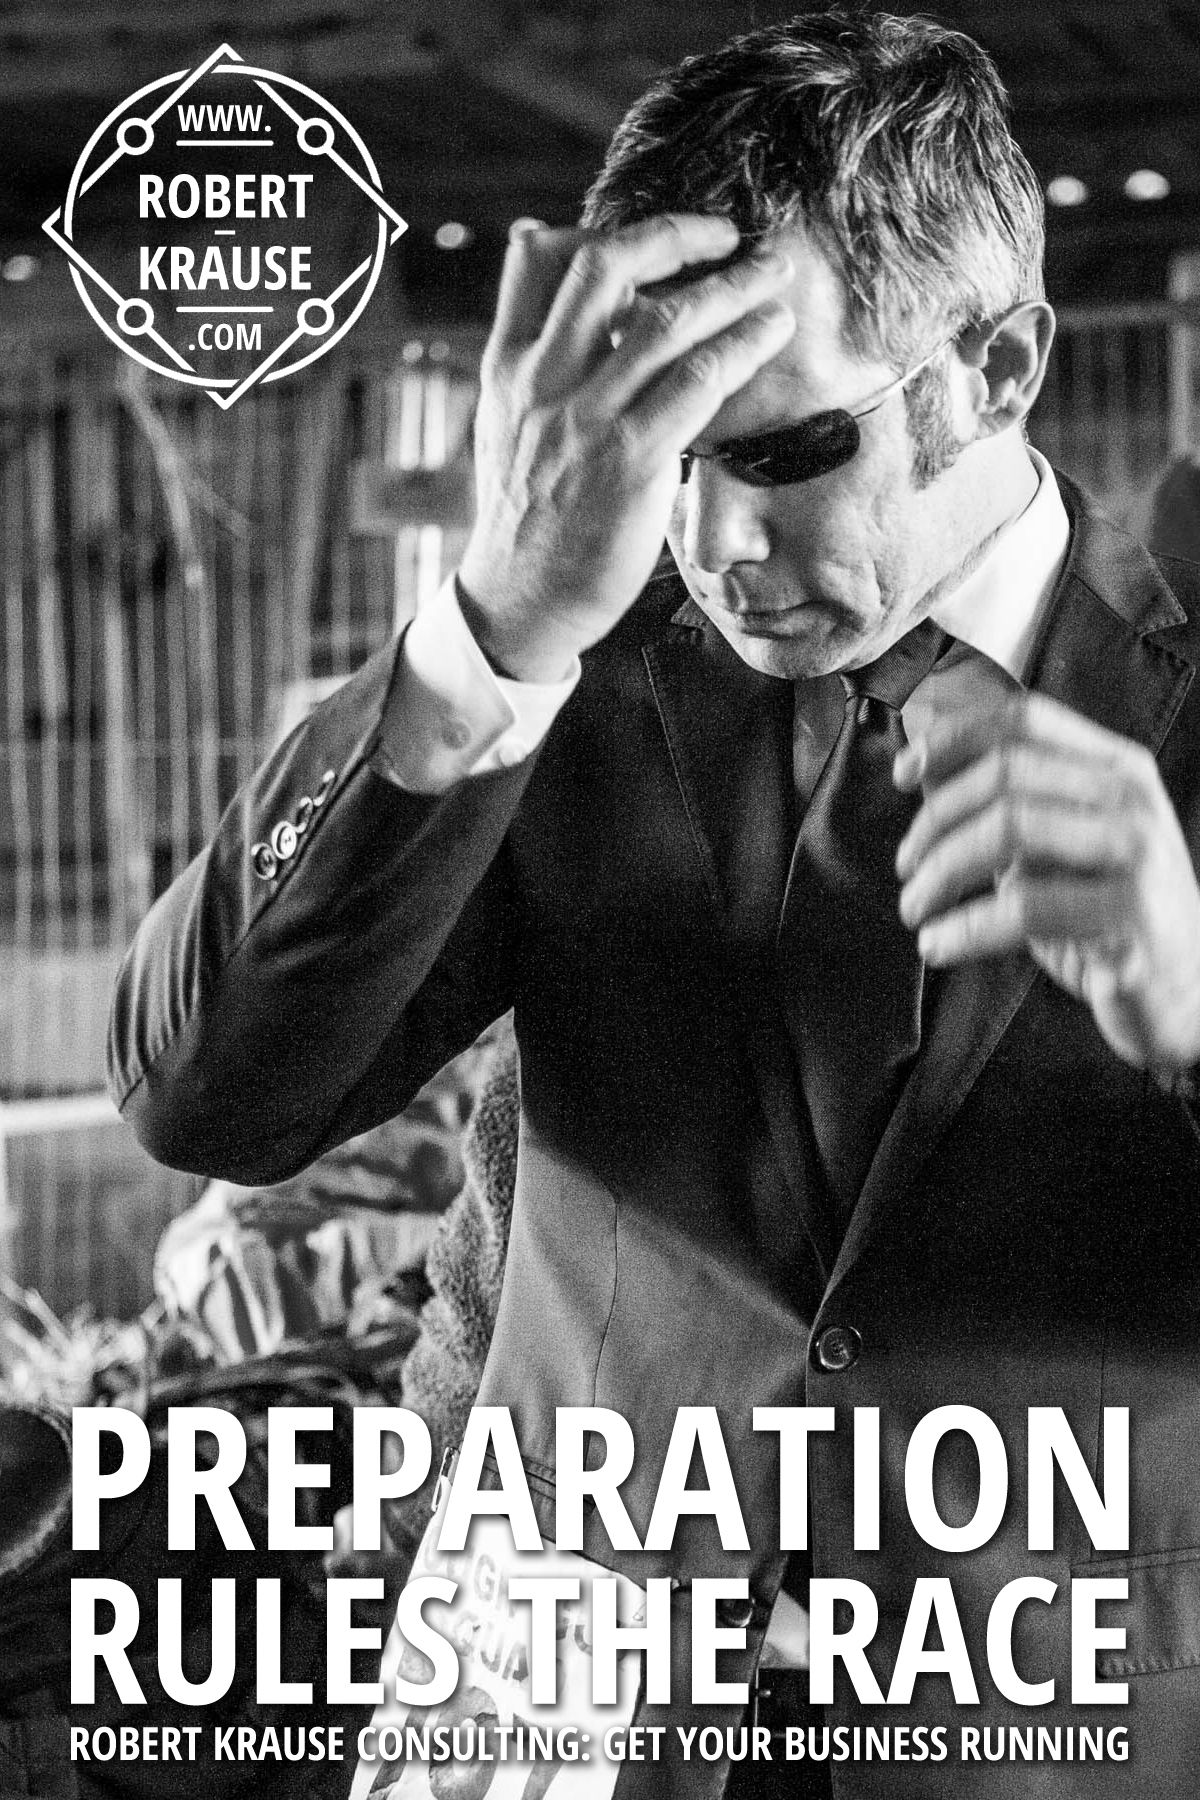 Preparation rules the race. Get your business running: Robert Krause Consulting. http://www.robert-krause.com